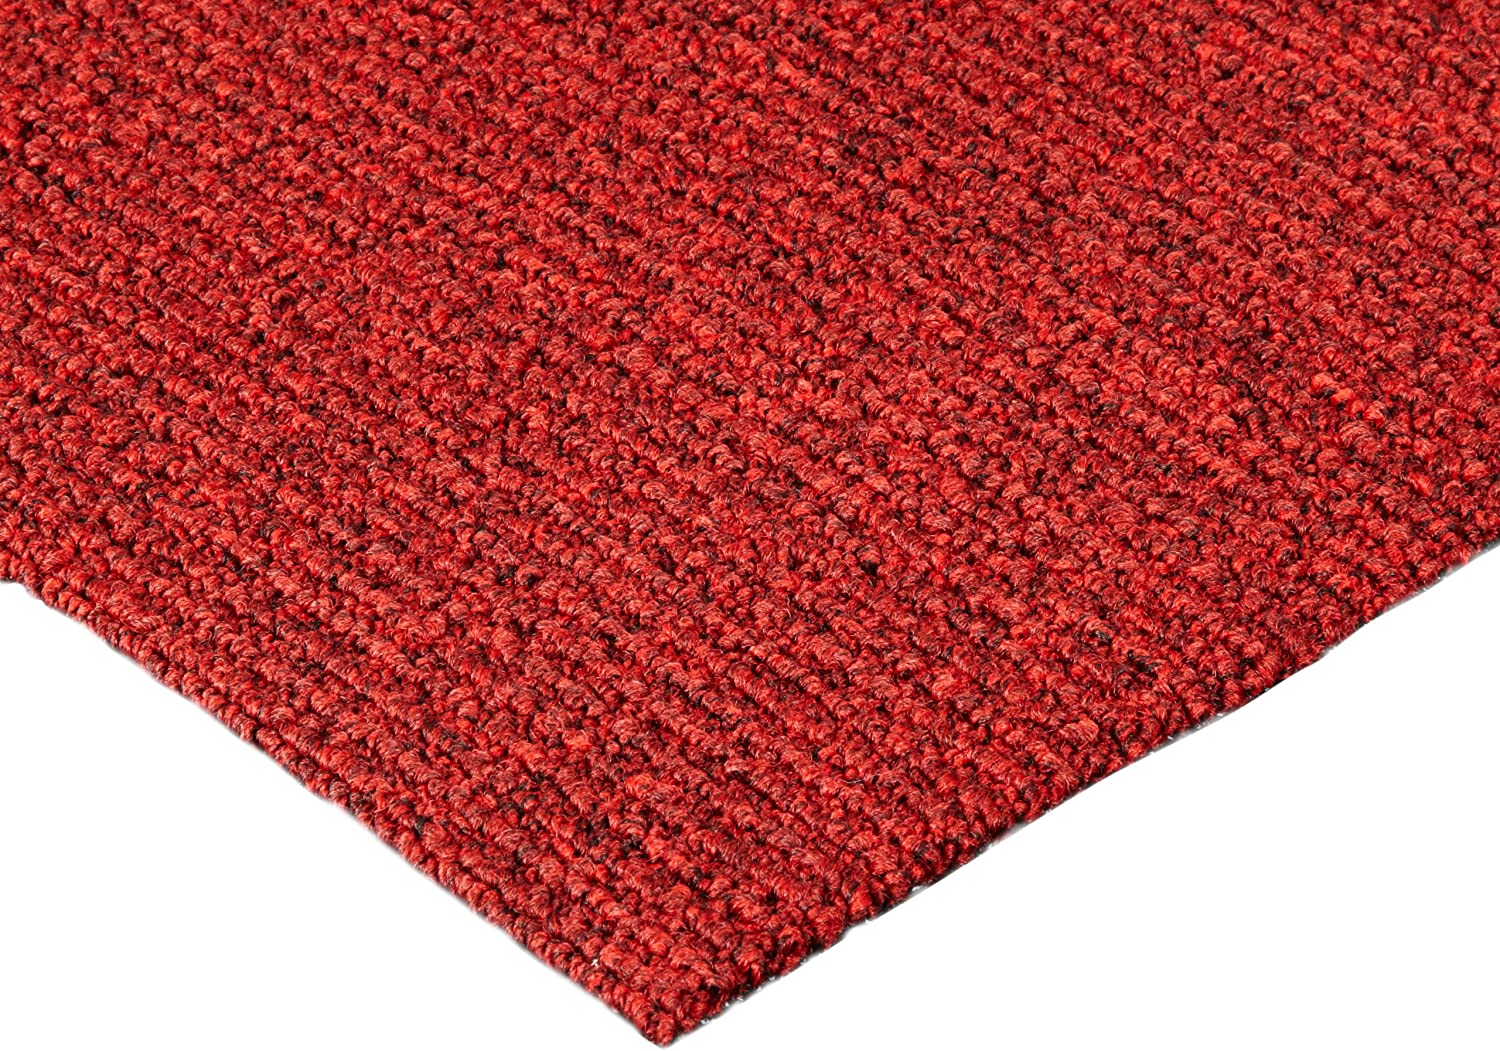 Notrax 132 Estes Entrance Mat, for Main Entranceways and Heavy Traffic Areas, 3' Width x 10' Length x 3 8  Thickness, Red Black